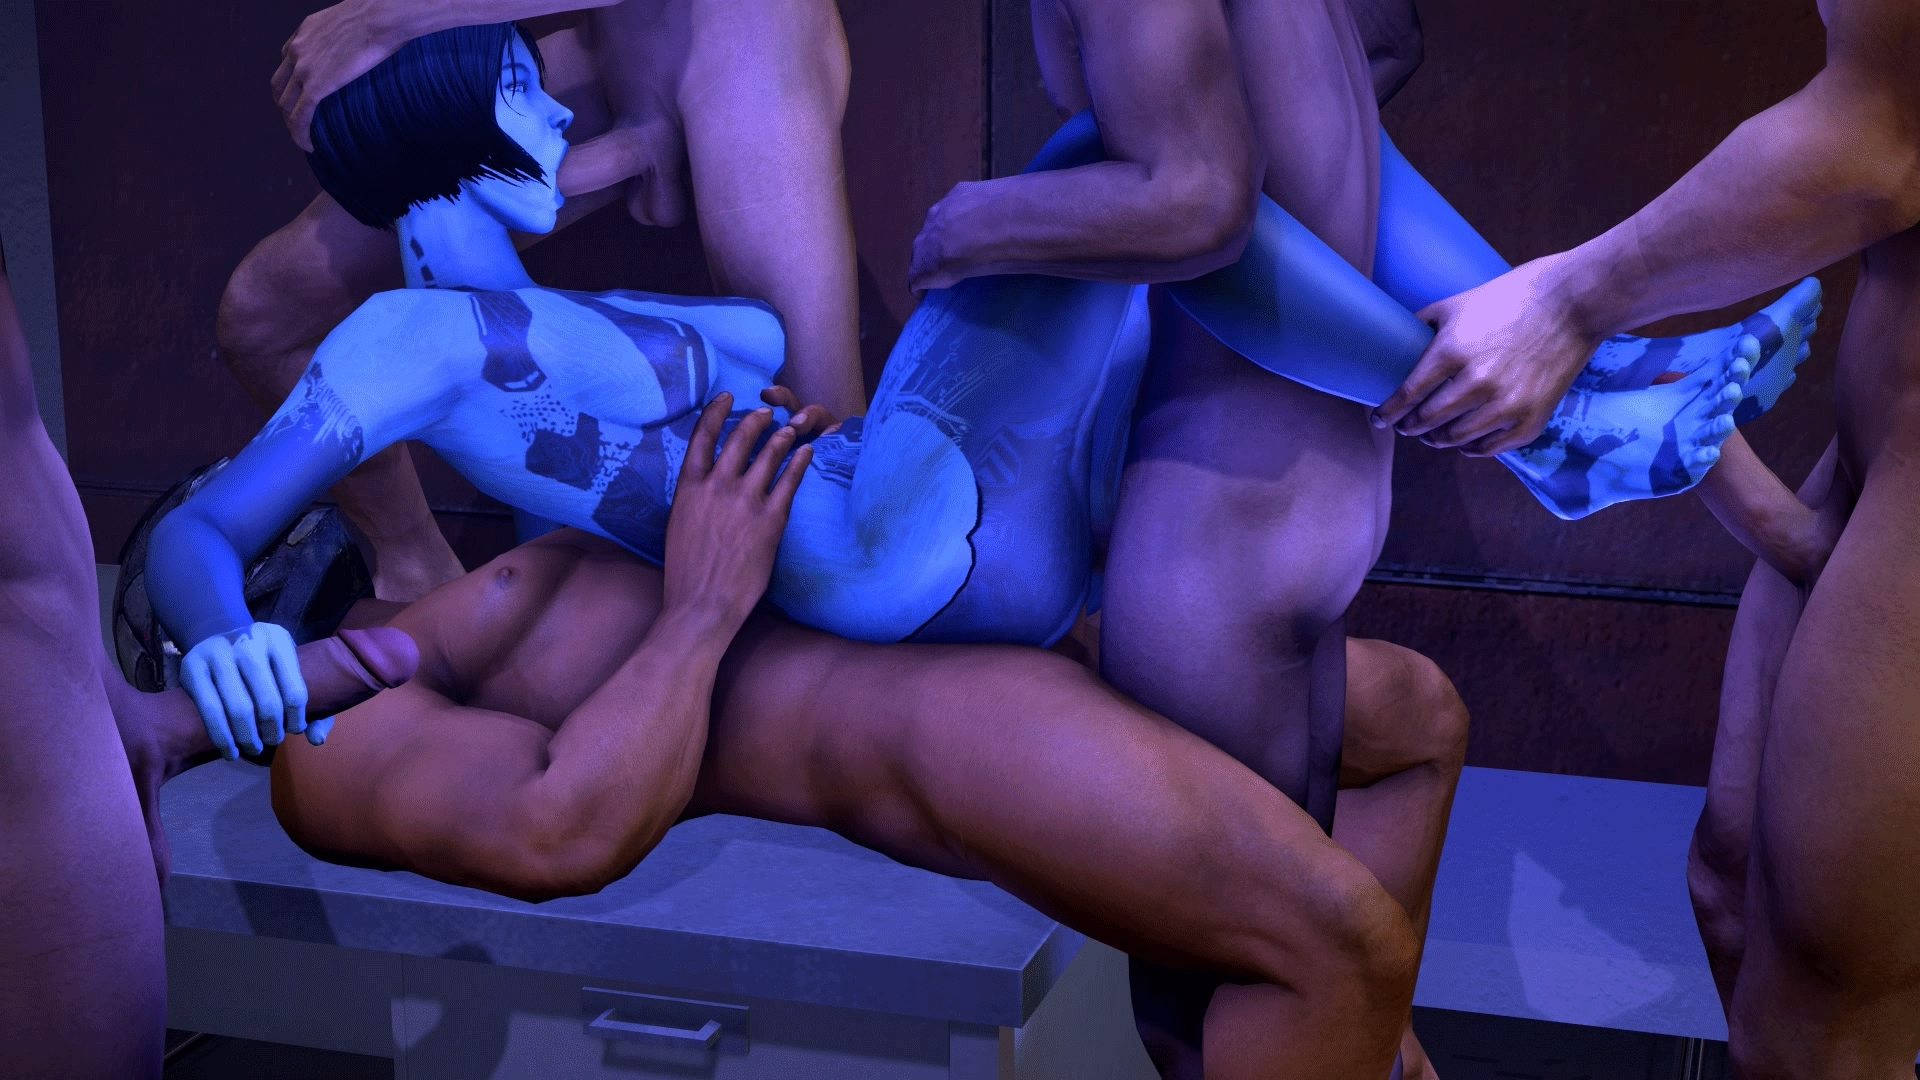 Halo animated xxx porn erotica videos